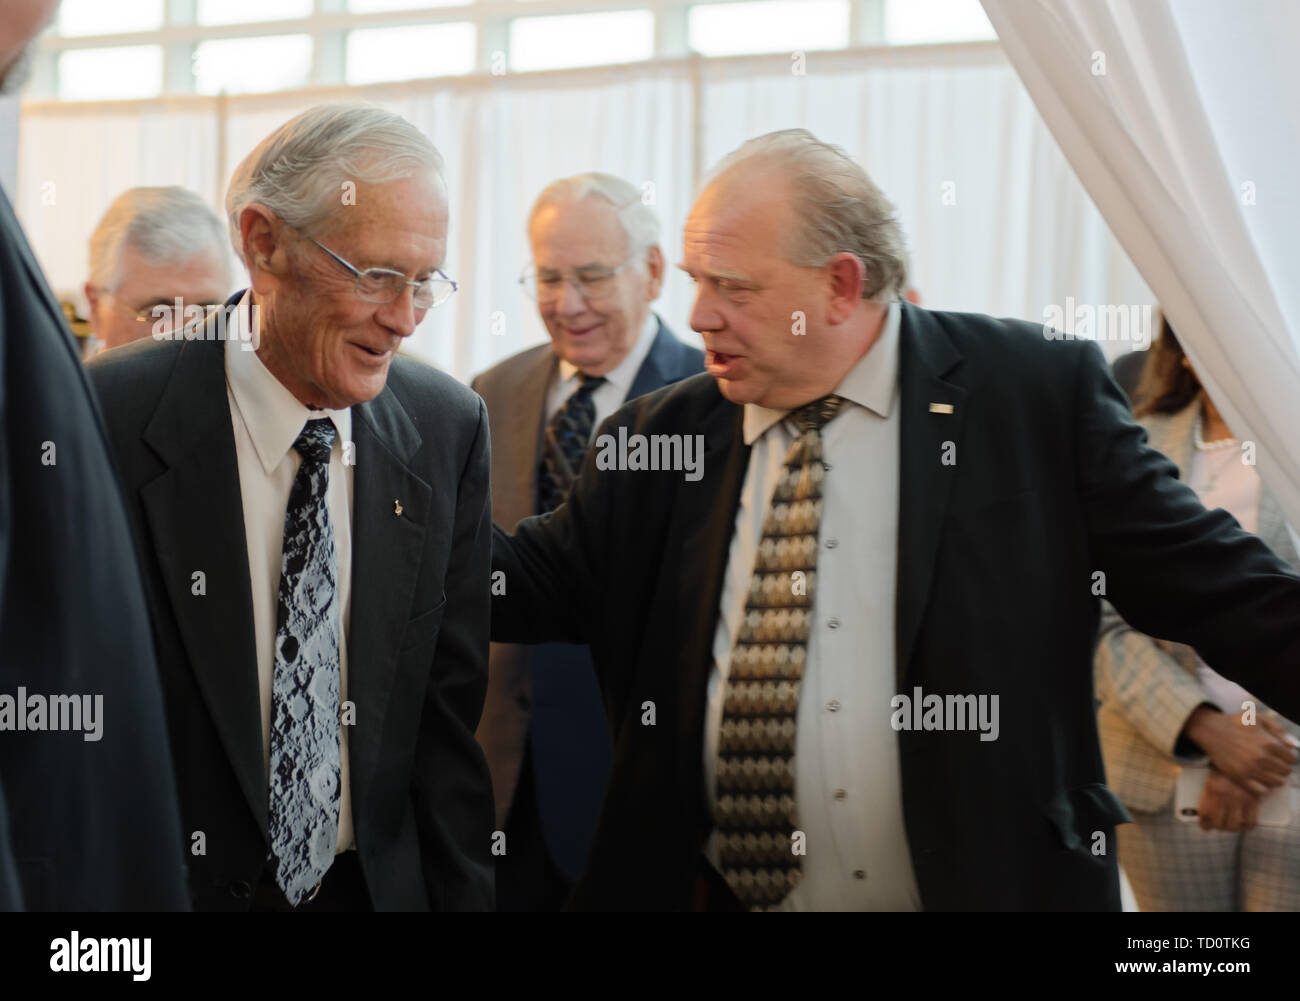 Garden City, New York, USA. 6th June, 2019. At left, Apollo 16 astronaut CHARLIE DUKE is about to walk through entrance curtain, at Cradle of Aviation Museum, to Apollo at 50 Anniversary Dinner, an Apollo astronaut tribute celebrating the Apollo 11 mission Moon landing. Credit: Ann Parry/ZUMA Wire/Alamy Live News - Stock Image